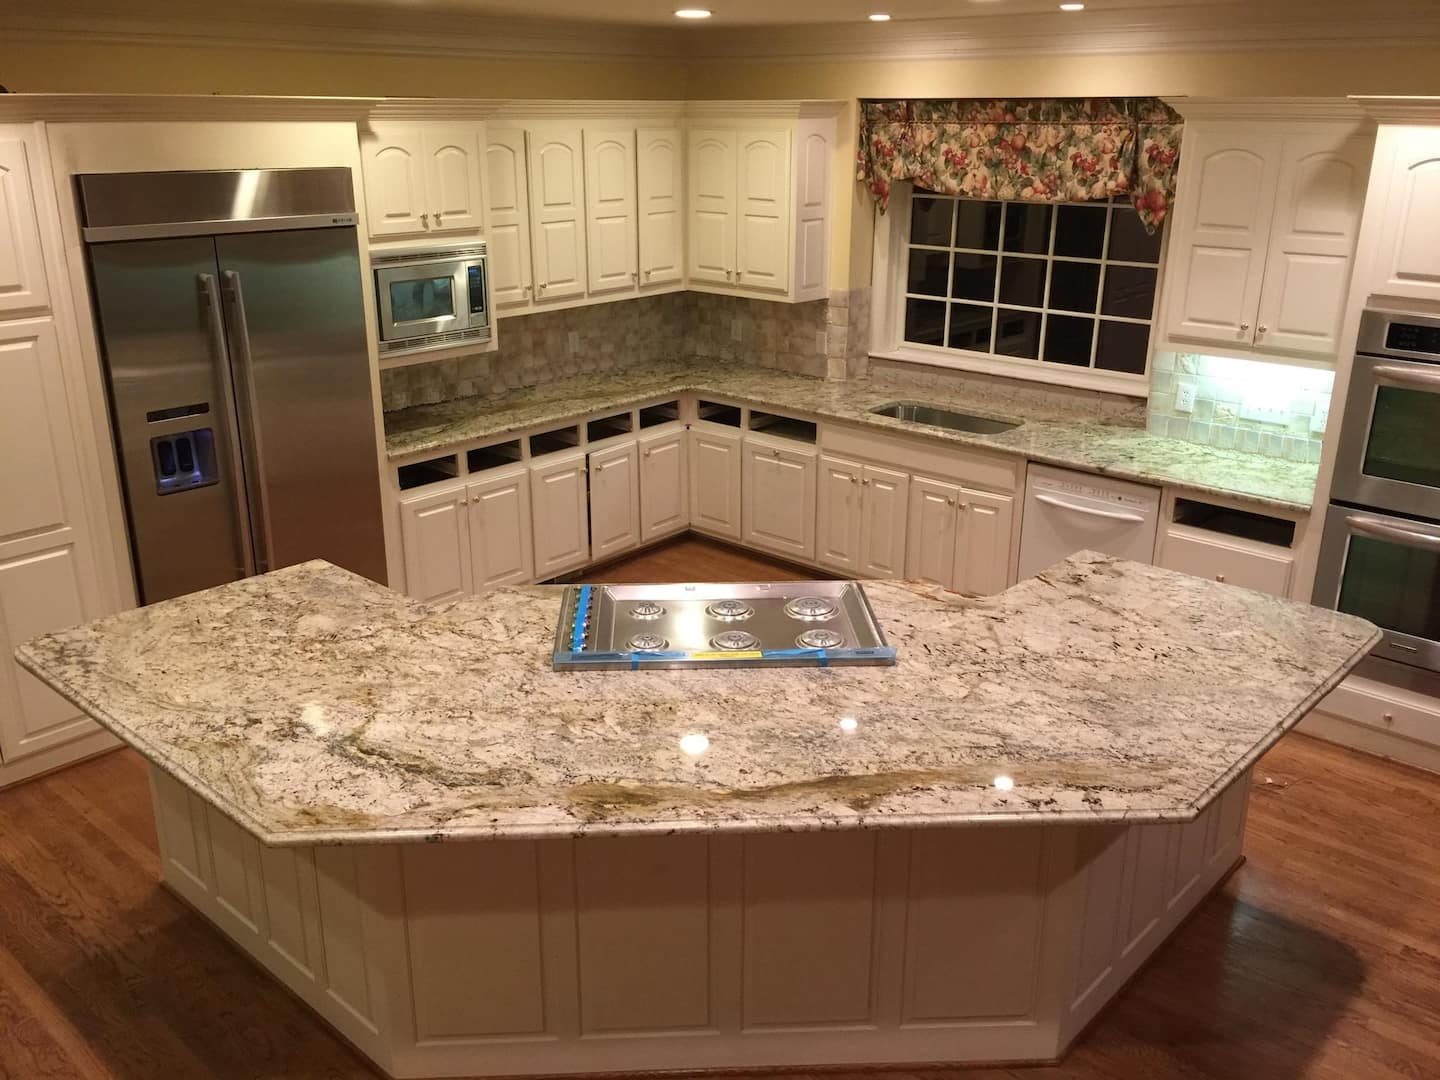 Colors Of Granite Kitchen Countertops Kitchen Countertop Trends For 2016 Angies List